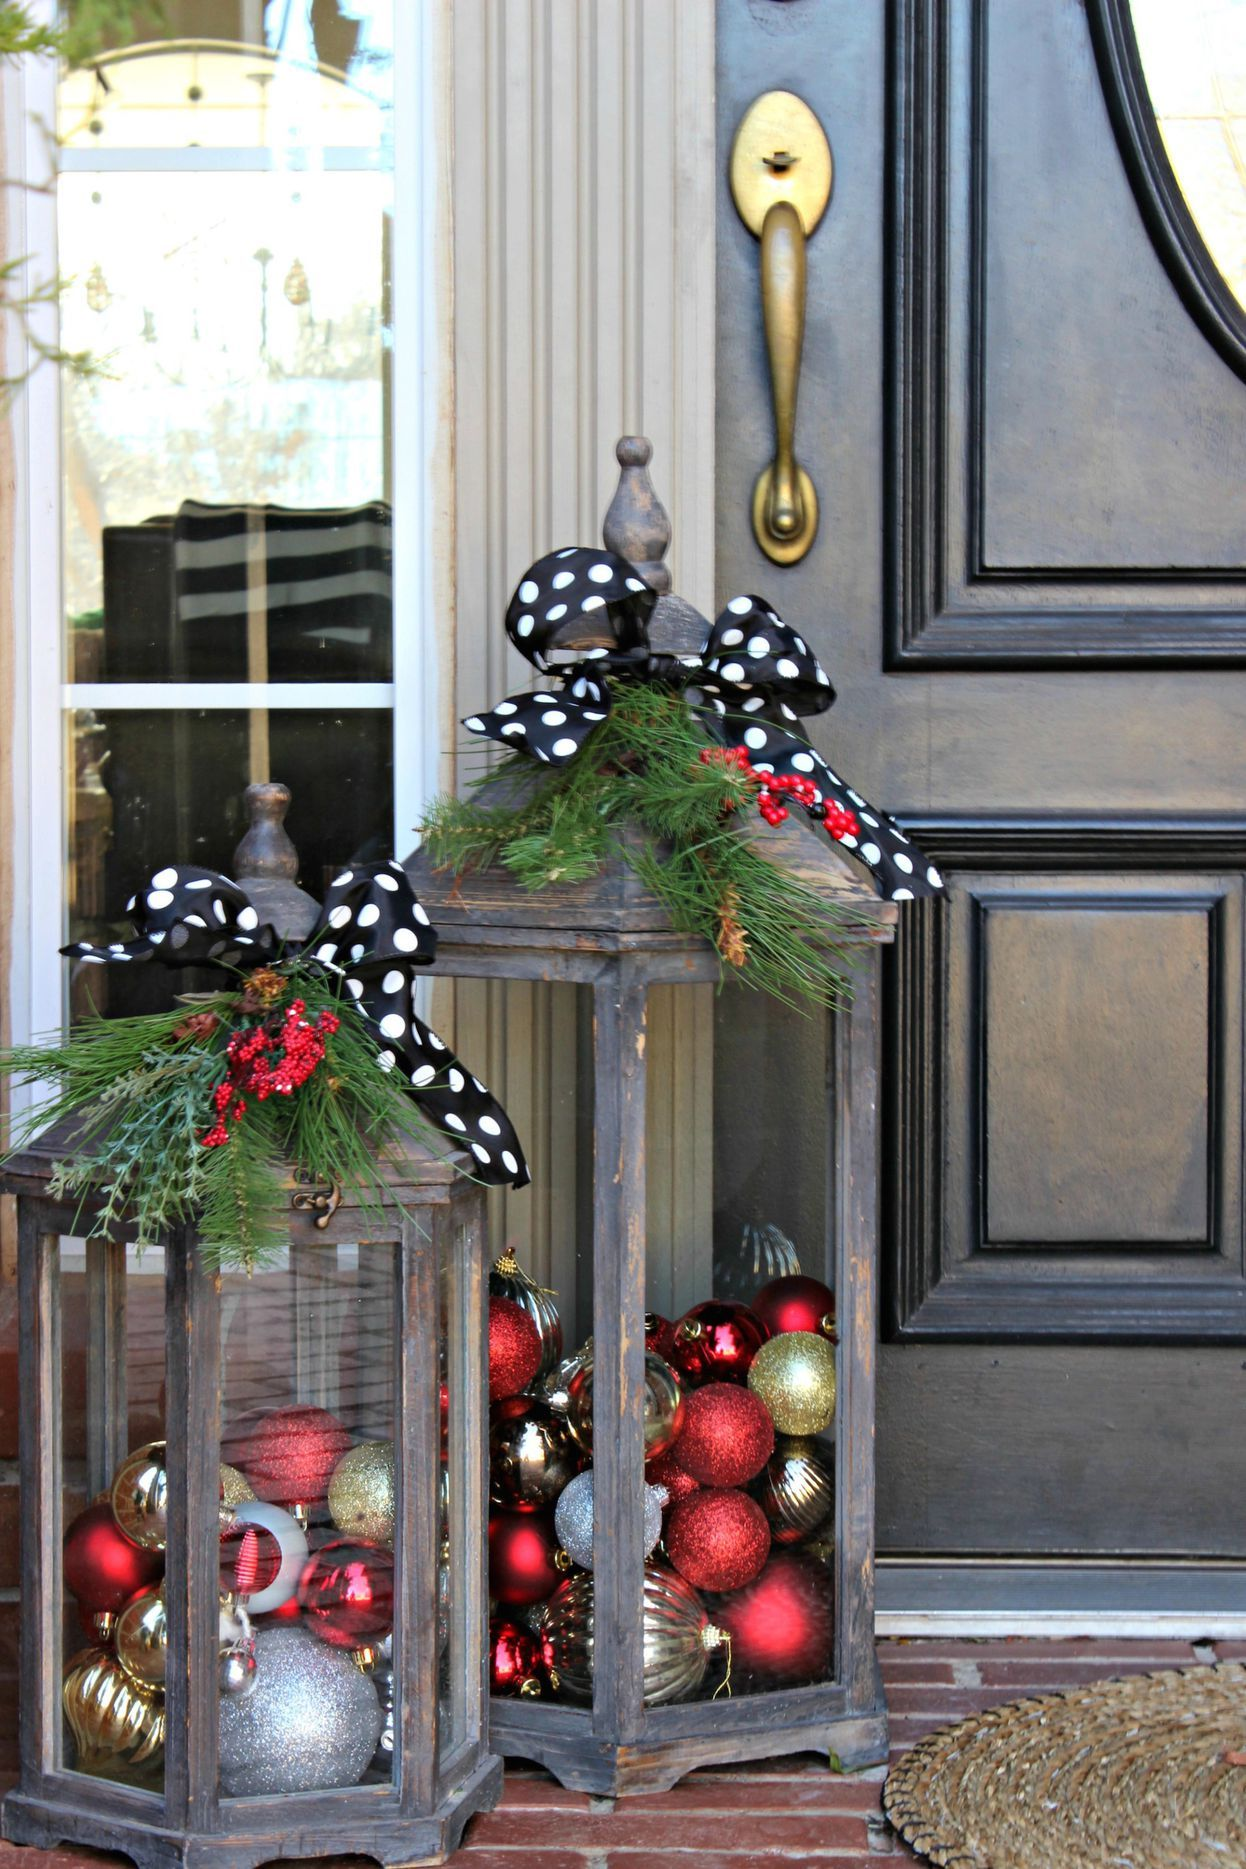 These Amazing Outdoor Christmas Decorations Are The Only Inspiration You Need Outside Christmas Decorations Christmas Decorations Diy Outdoor Christmas Porch Decor